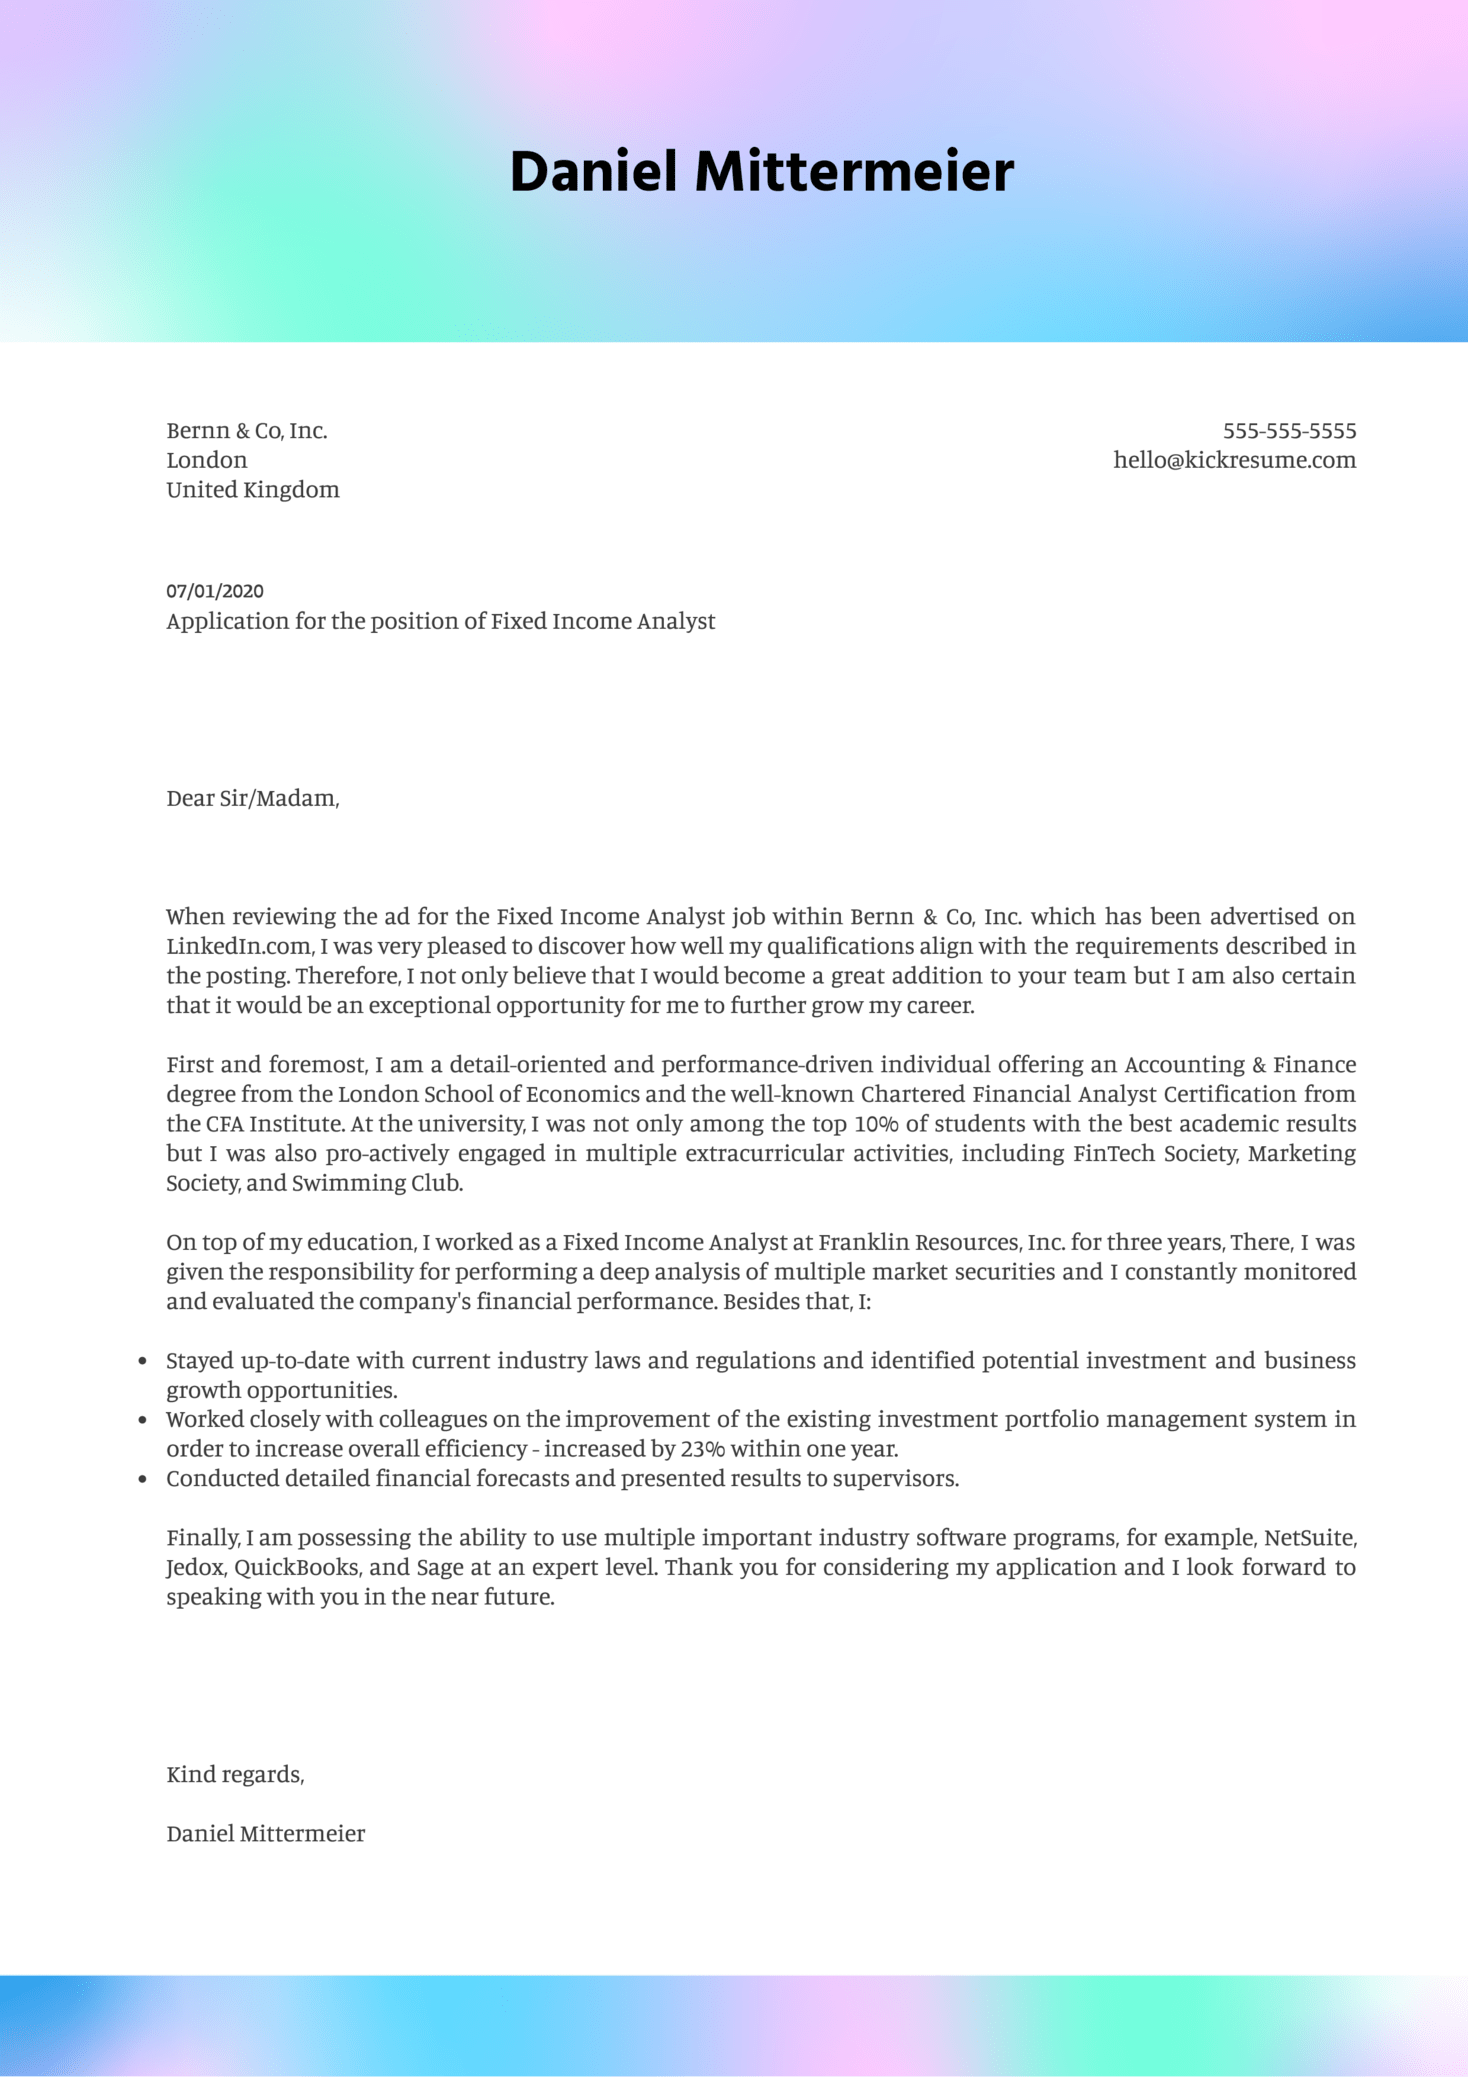 Fixed Income Analyst Cover Letter Example